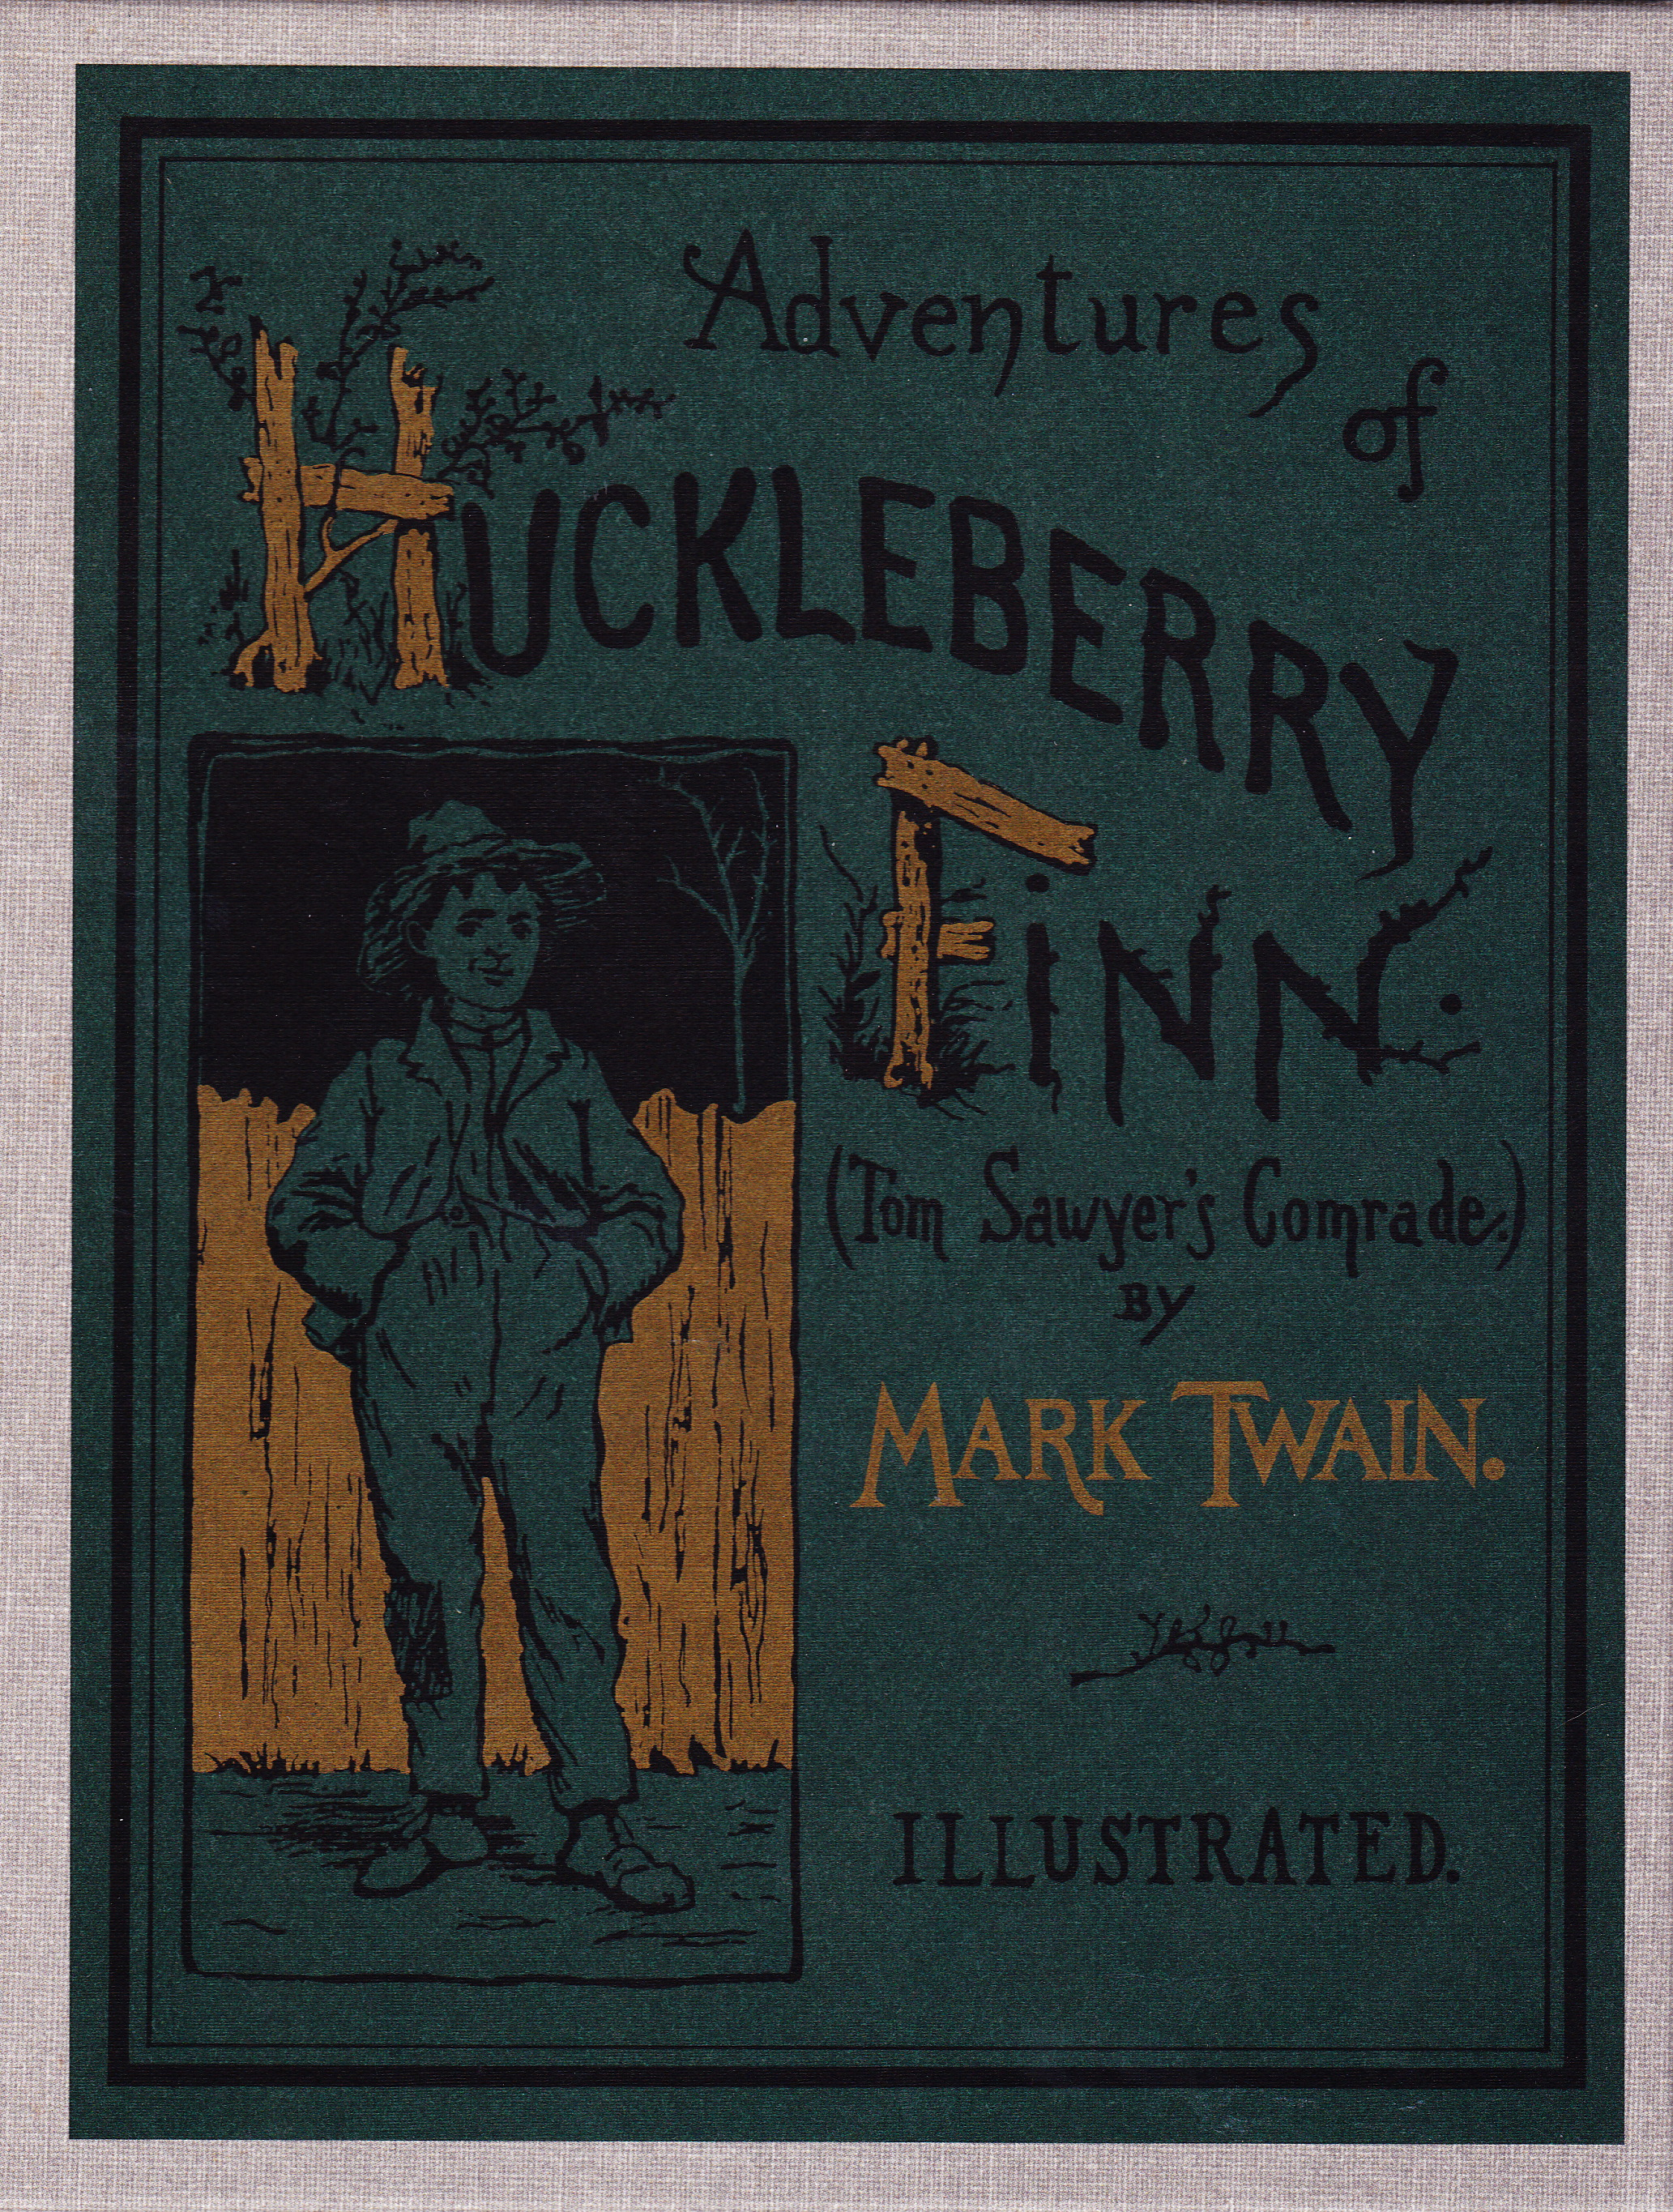 a brief review of mark twains book adventures of huckleberry finn Mark twain regarded as the pride and joy of american literature, the adventures of huckleberry finn is a picturesque novel depicting huck's epic journey from boyhood to manhood and the struggles he must face living in a corrupt society.